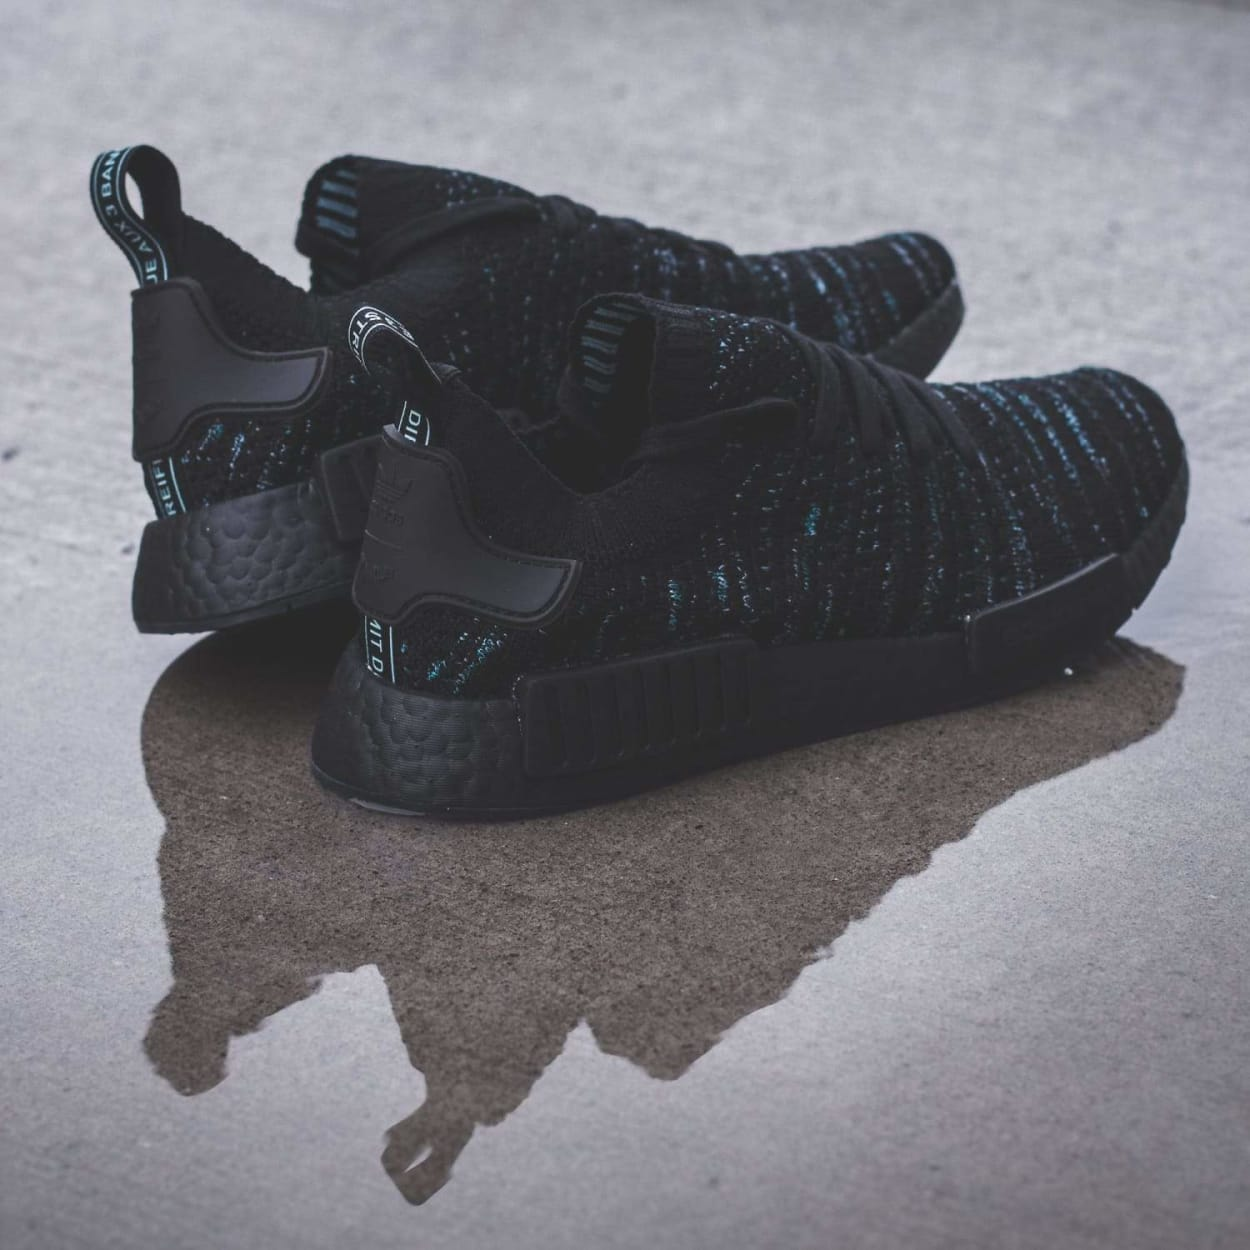 Parley for the Oceans x adidas Originals NMD STLT PK in Core Black - (AQ0943)